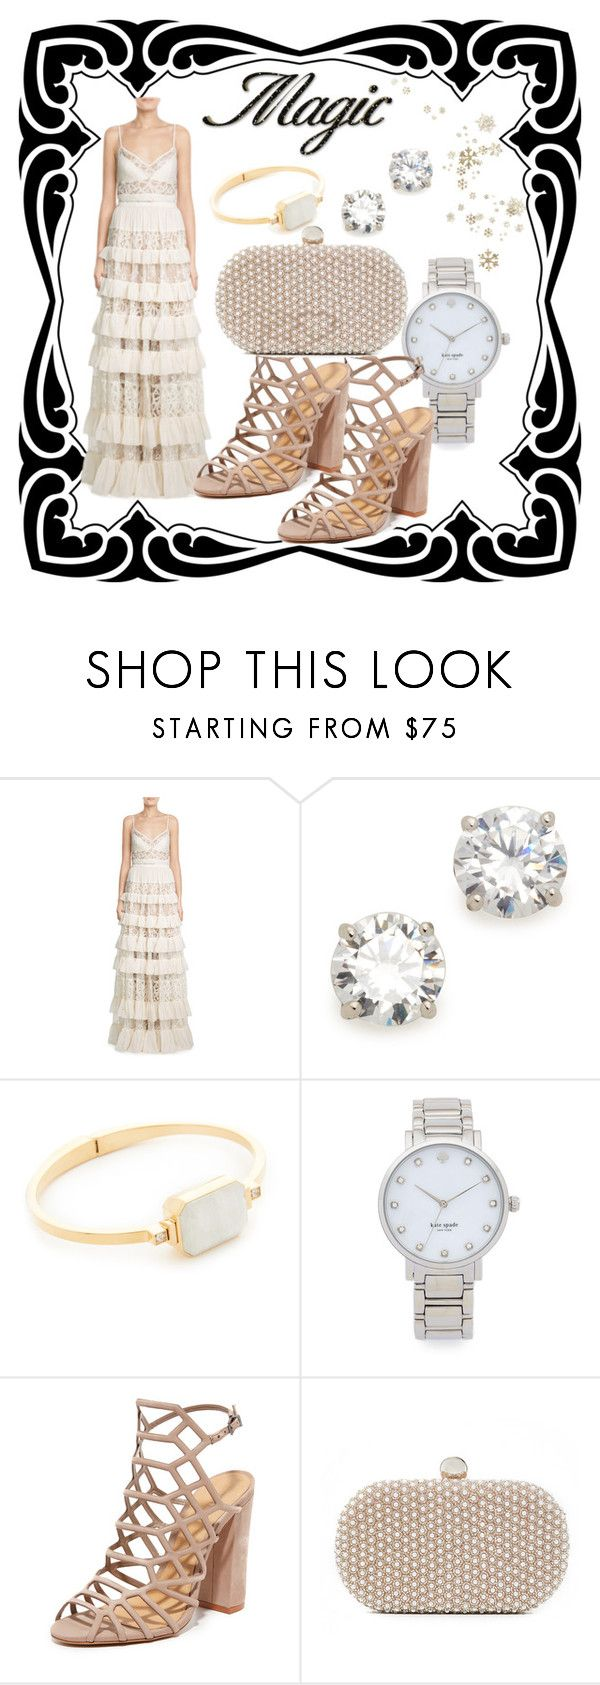 """""""Party Attire"""" by paige-brrian ❤ liked on Polyvore featuring Elie Saab, Kenneth Jay Lane, Ringly, Kate Spade, Schutz and Santi"""